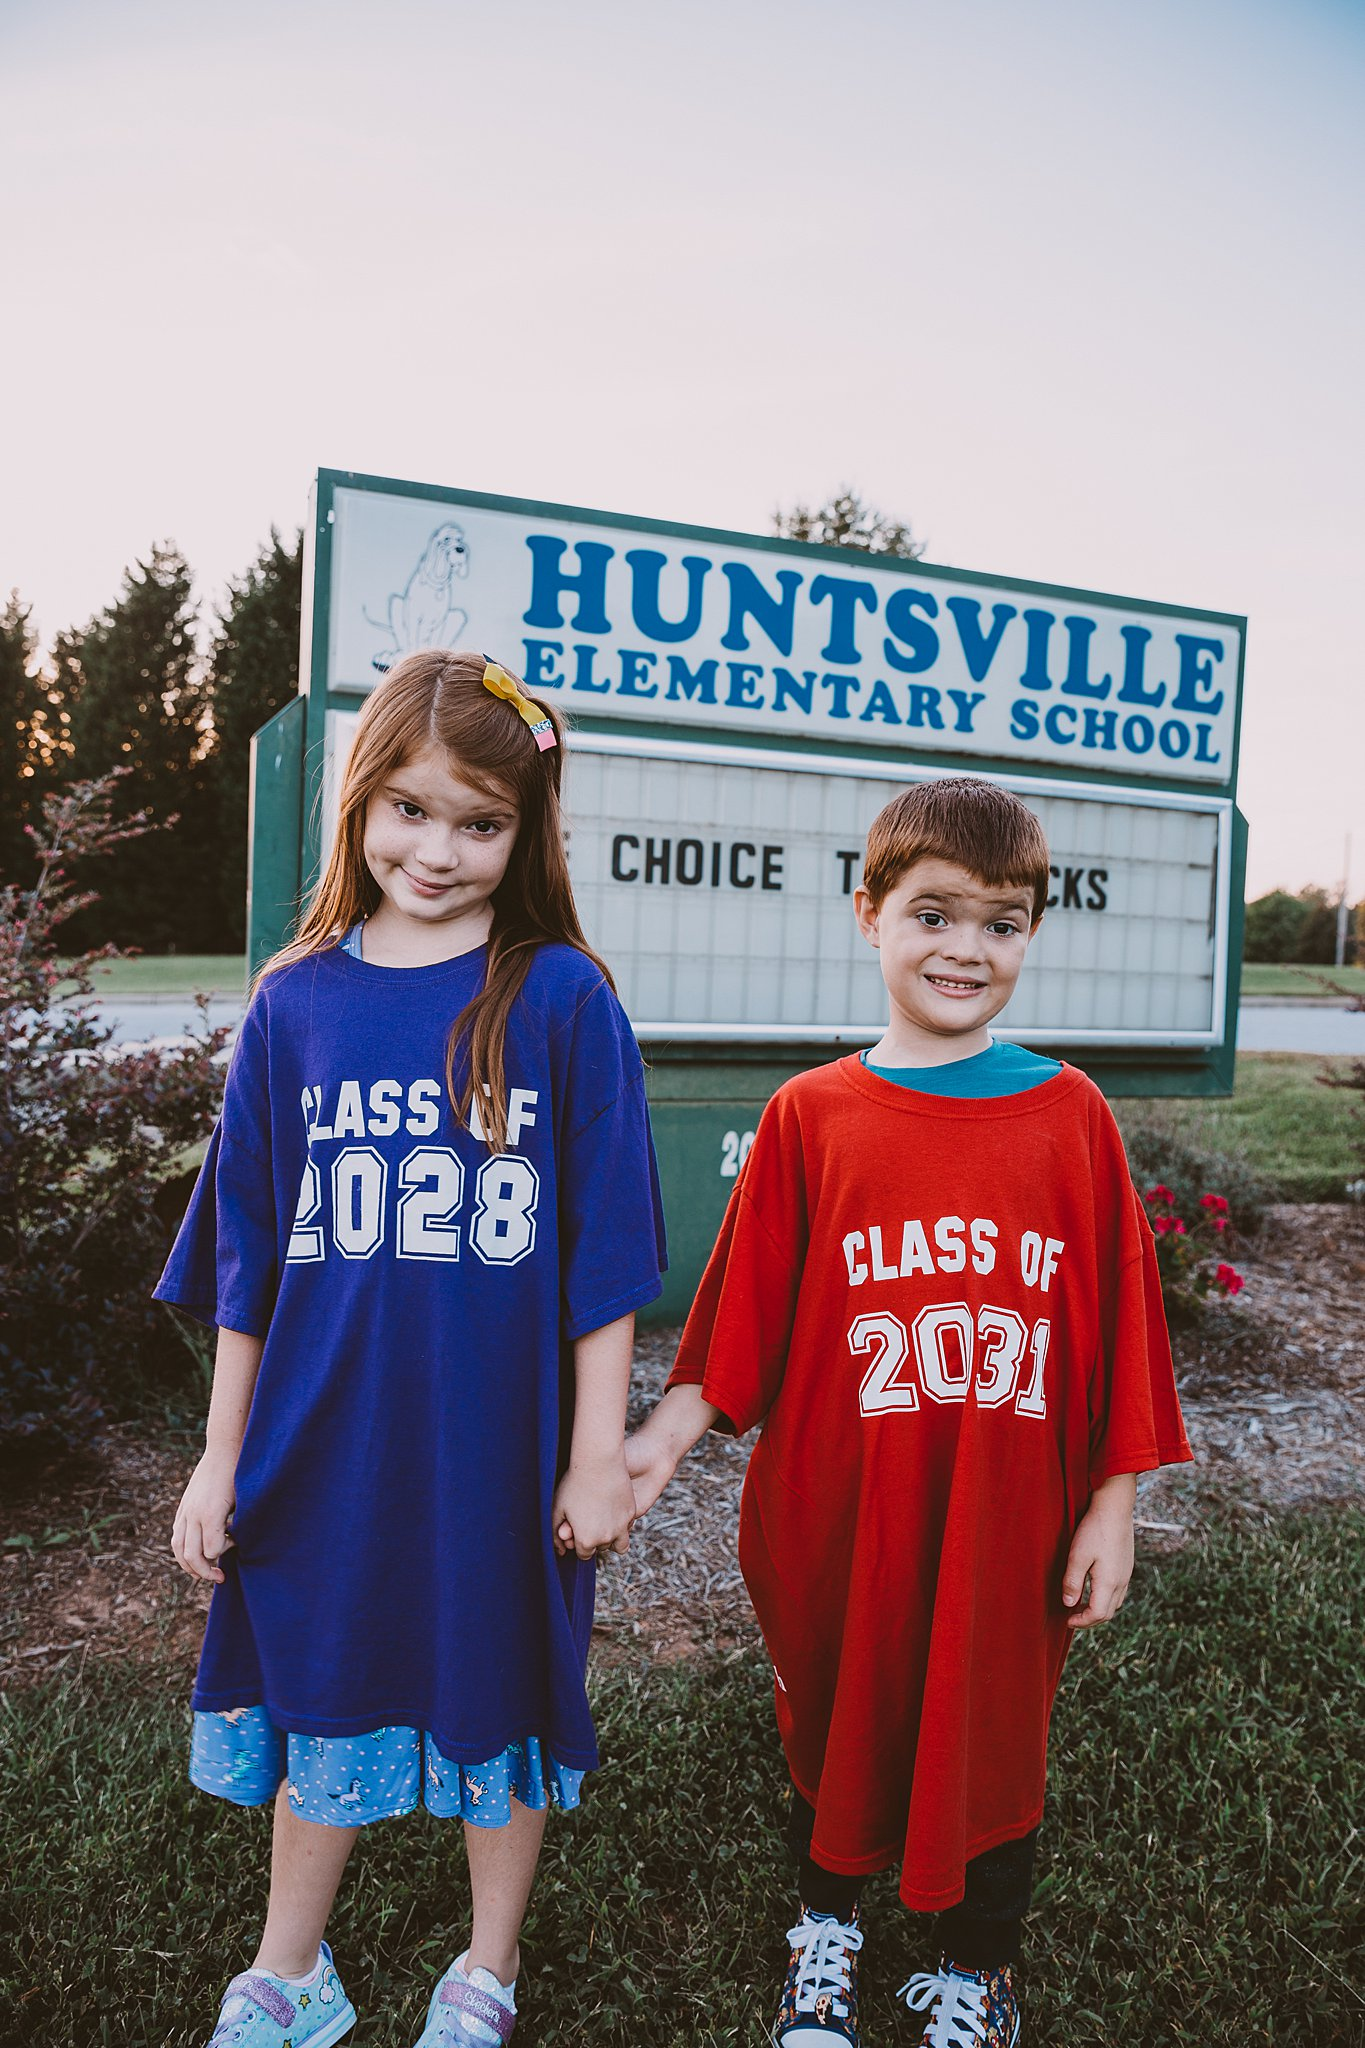 kids in class of t shirts for a first day of school picture